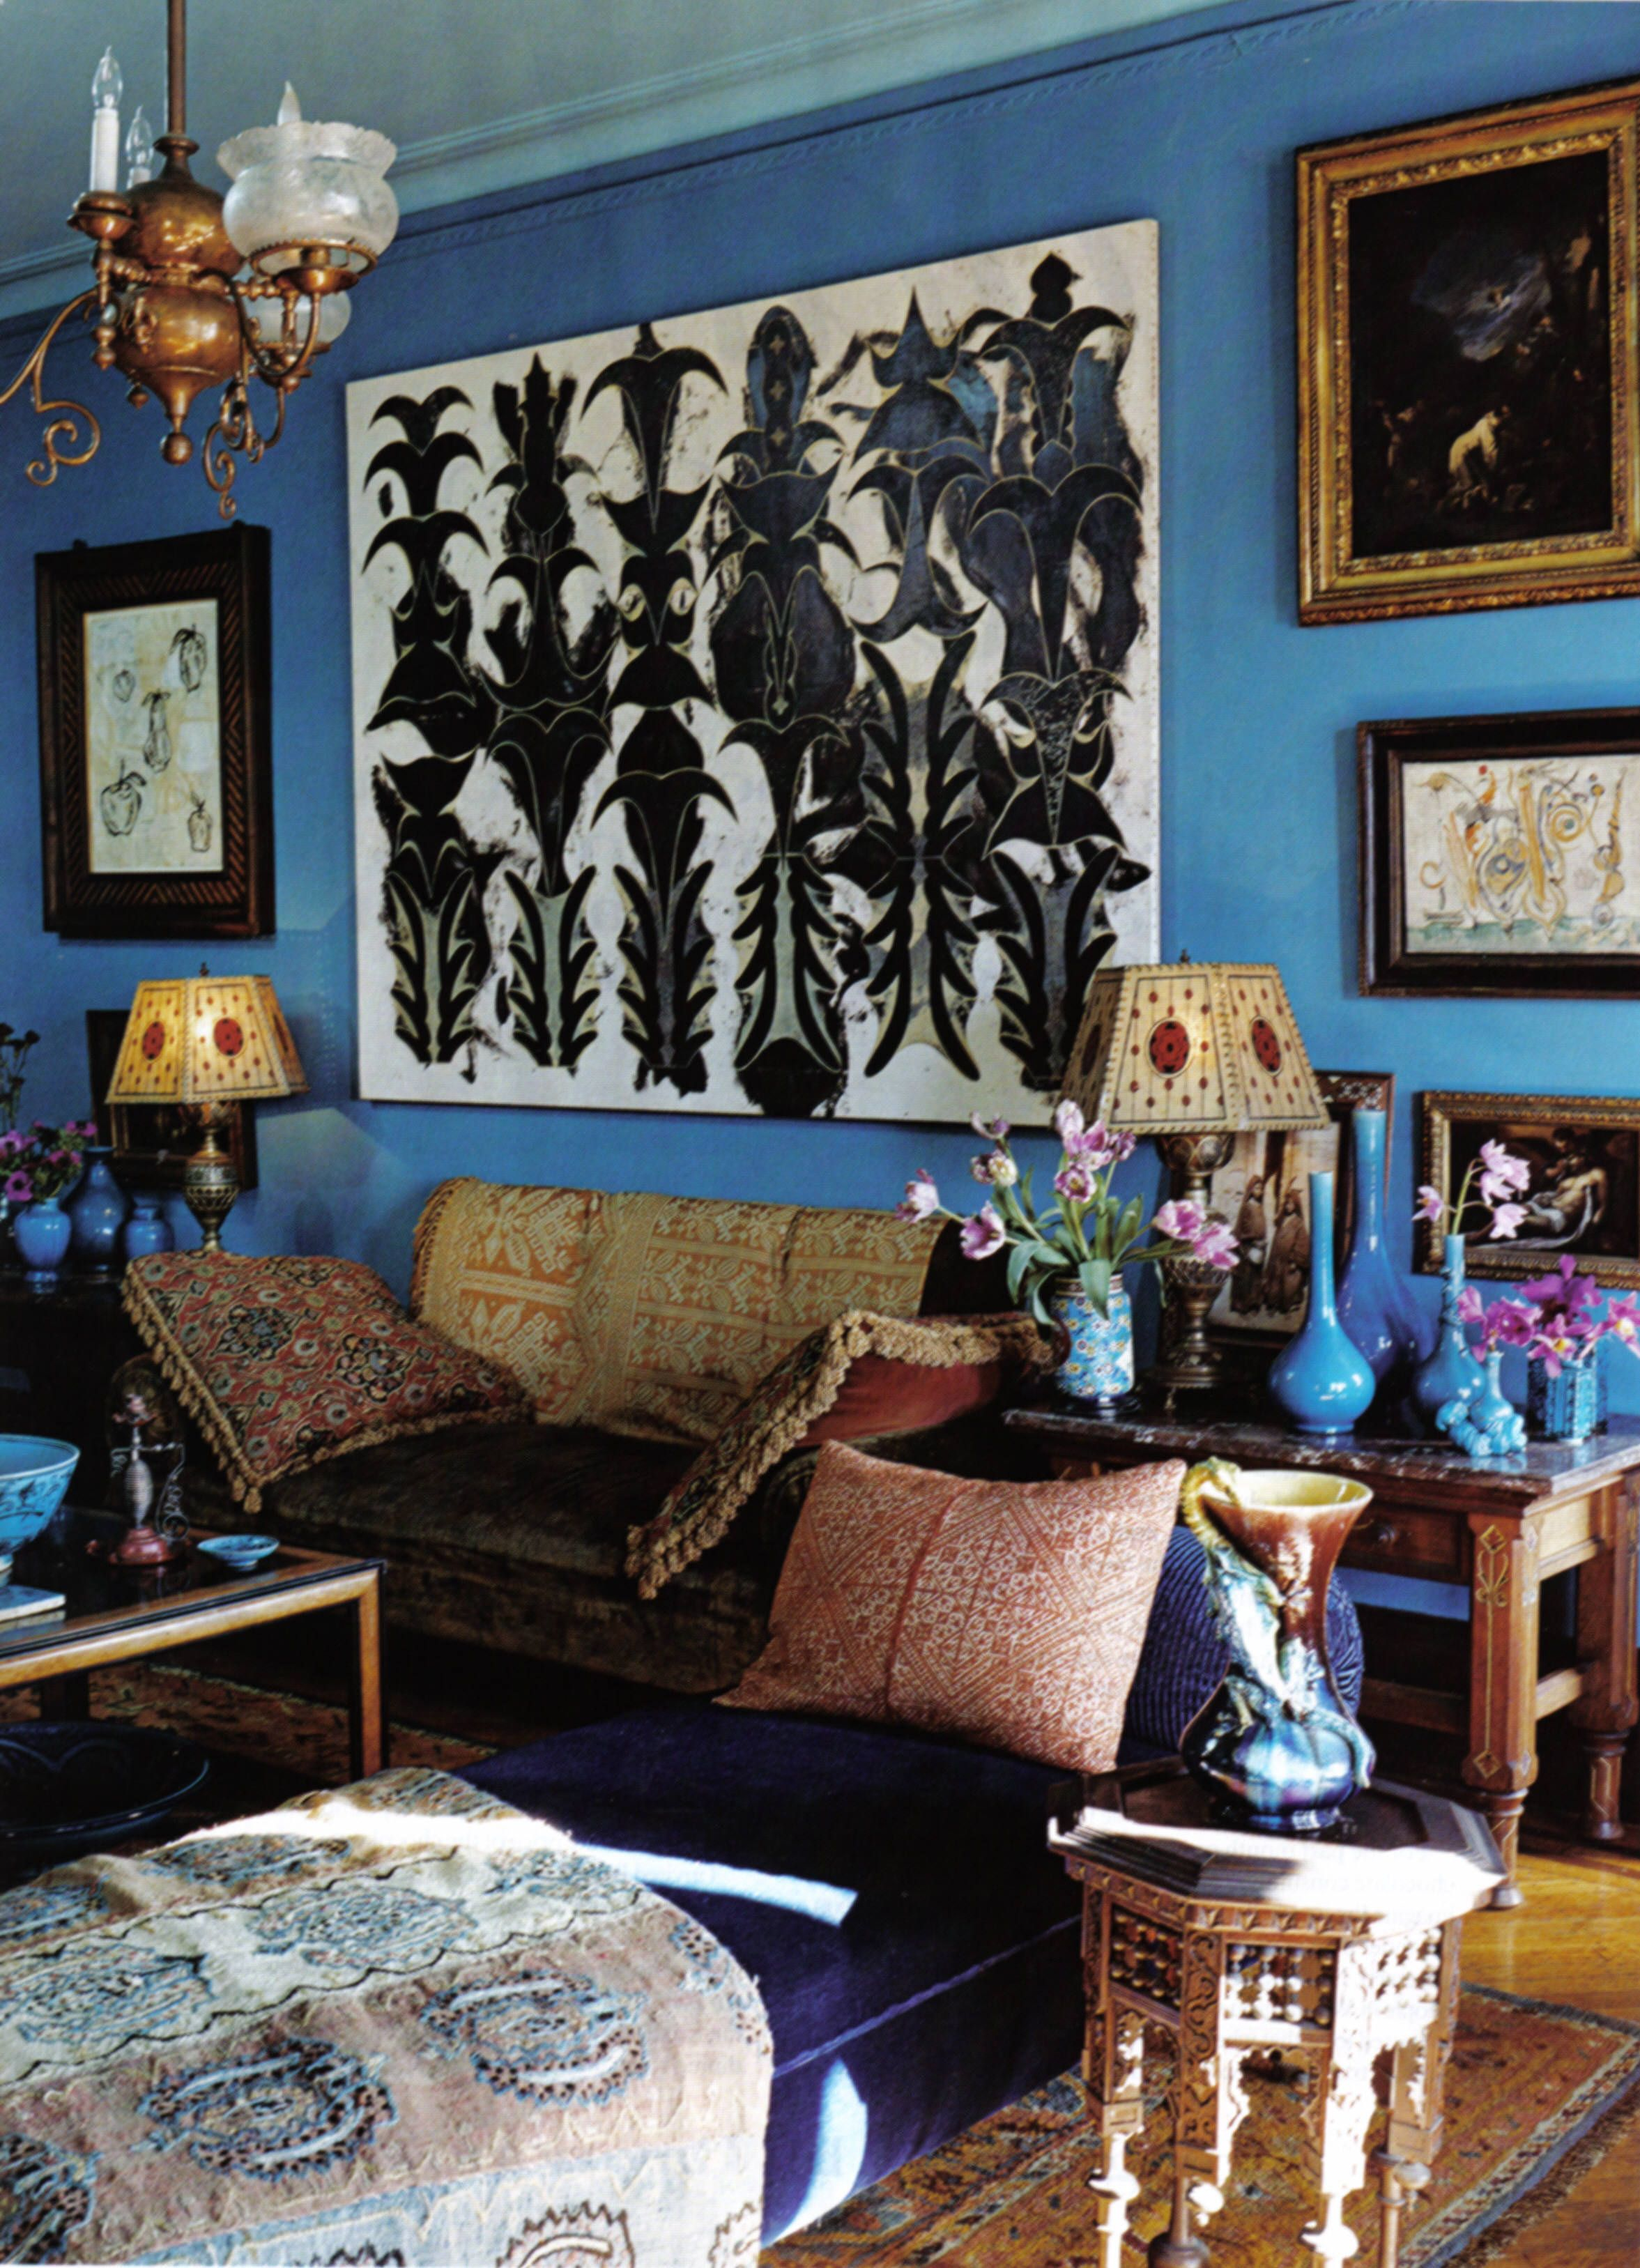 The Chelsea Hotel Apartment Of Artist Philip Taafe Photographed By Francois Halard For Vogue